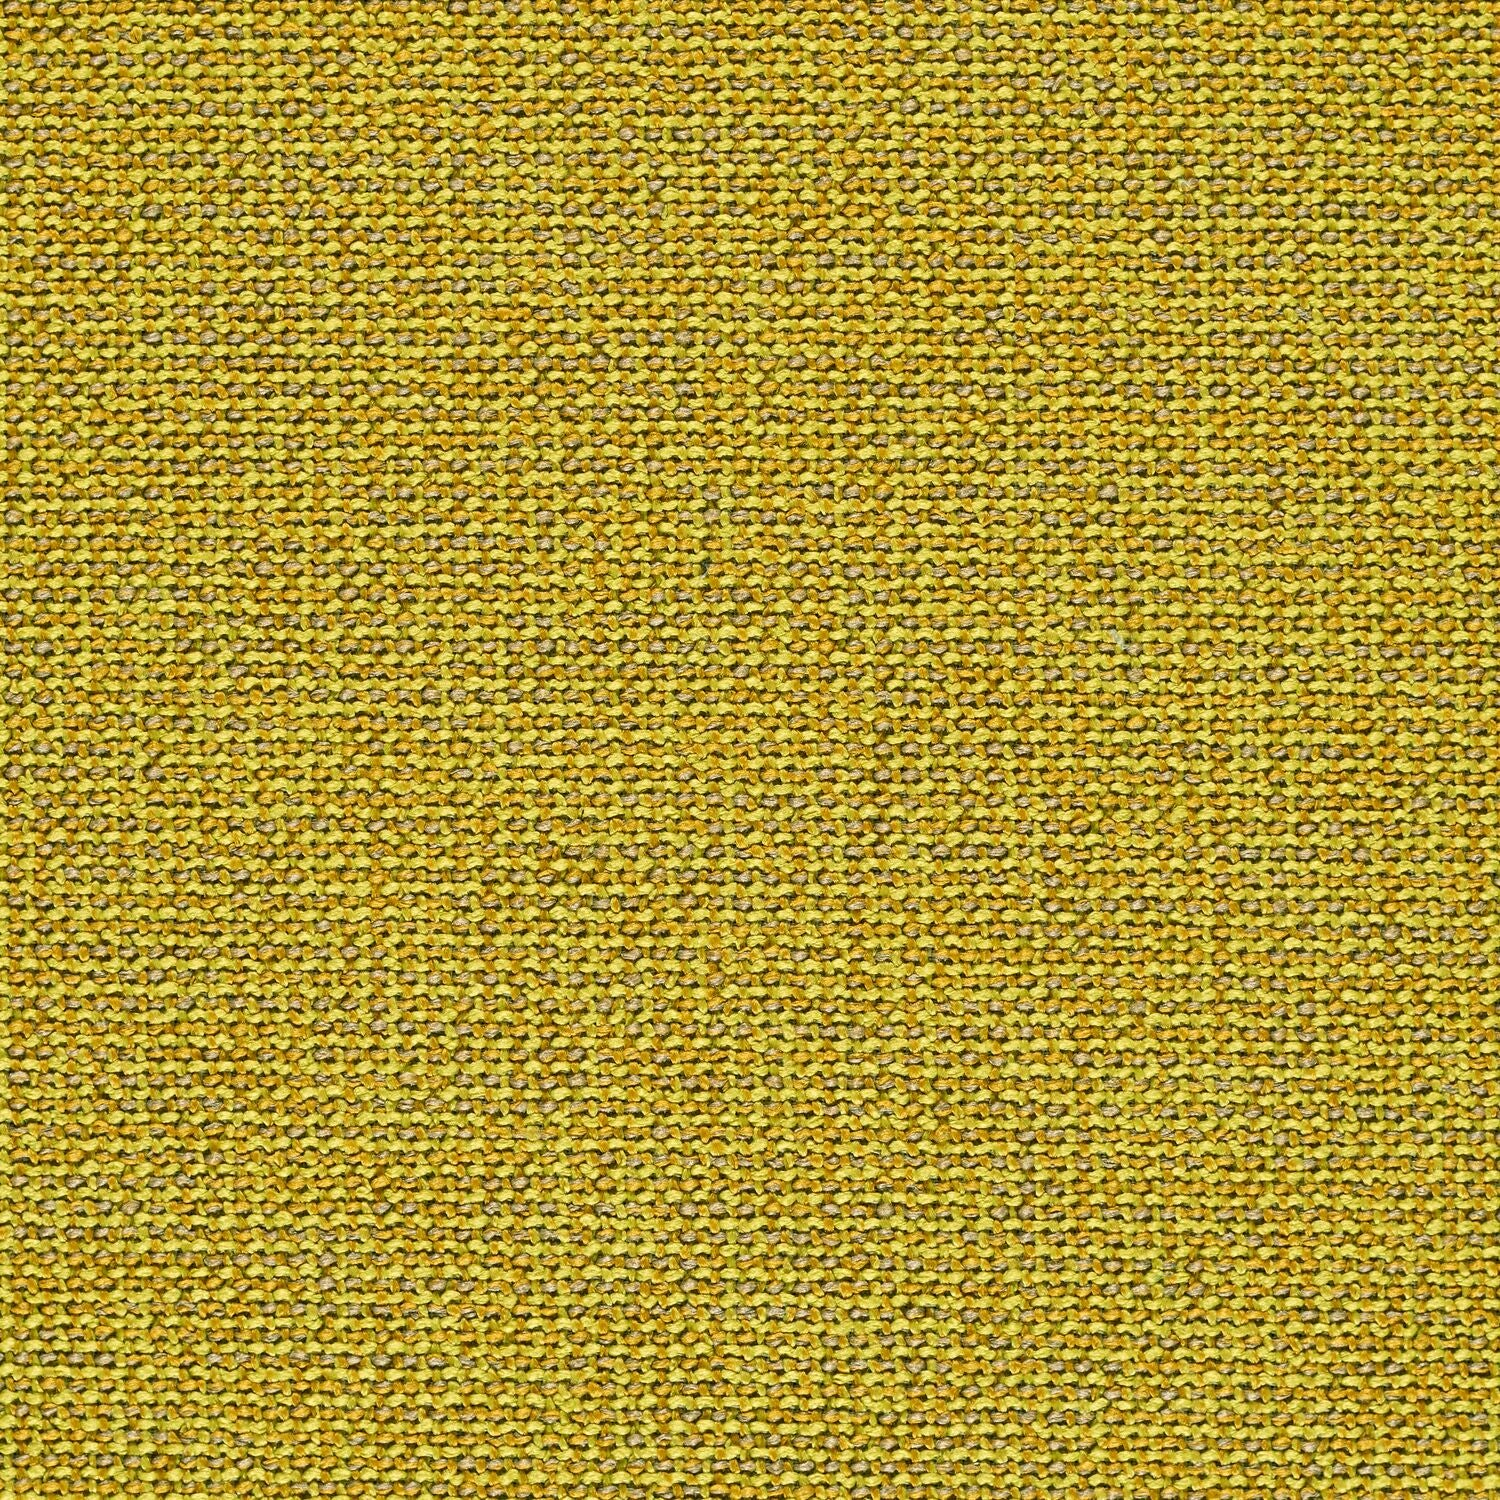 Adage - Photon - 4069 - 14 - Half Yard